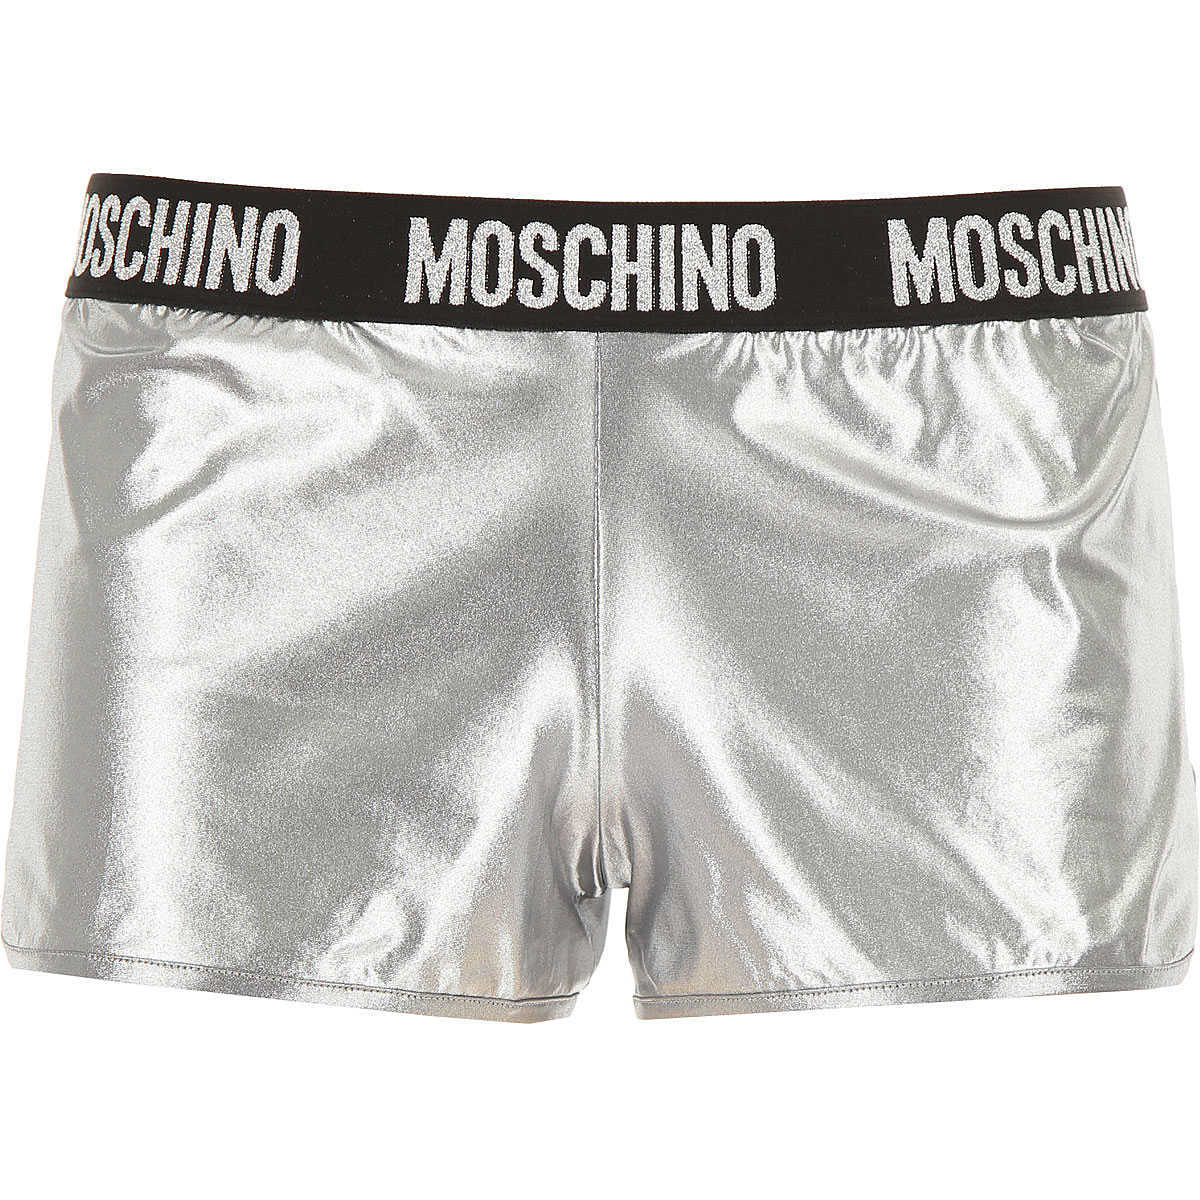 Moschino Shorts for Women On Sale Silver UK - GOOFASH